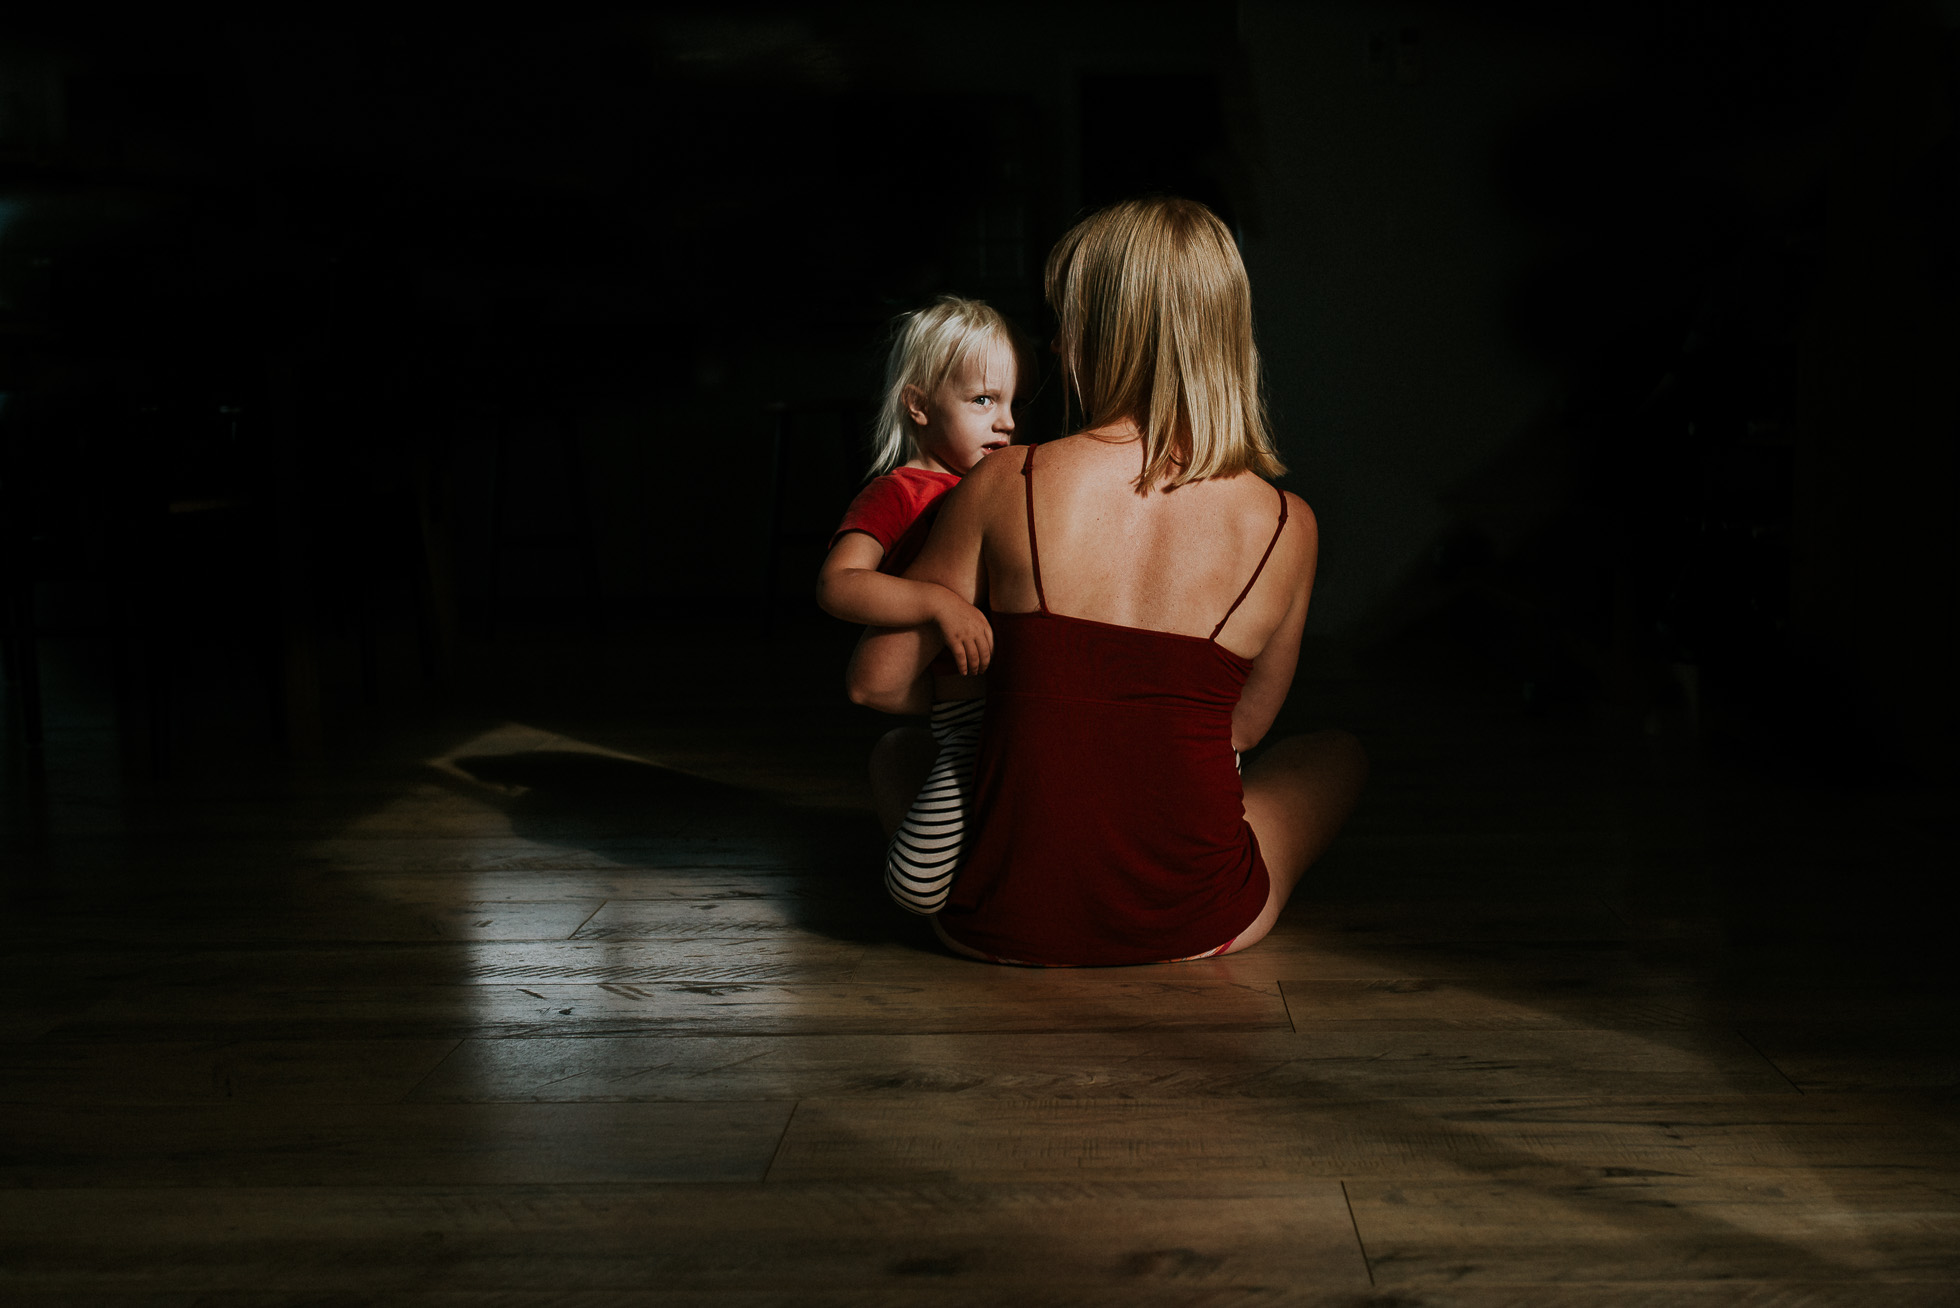 self-portrait-in-the-dark-shadows-with-child-photography.jpg